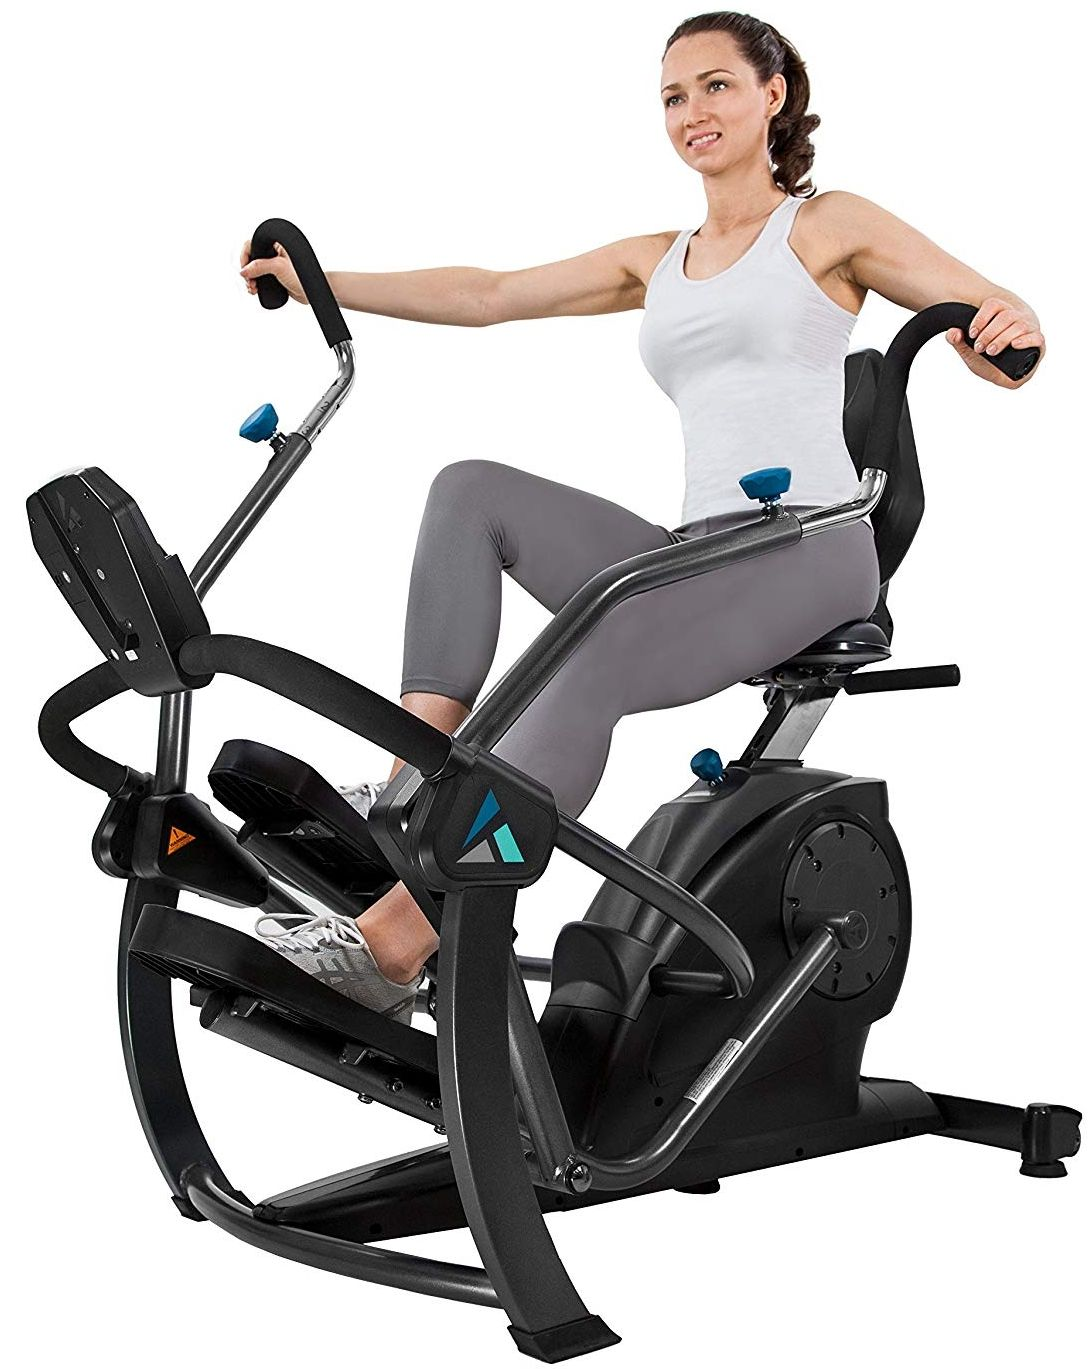 Teeter Freestep Recumbent Cross Trainer And Elliptical Biking Workout Best Exercise Bike Recumbent Bike Workout